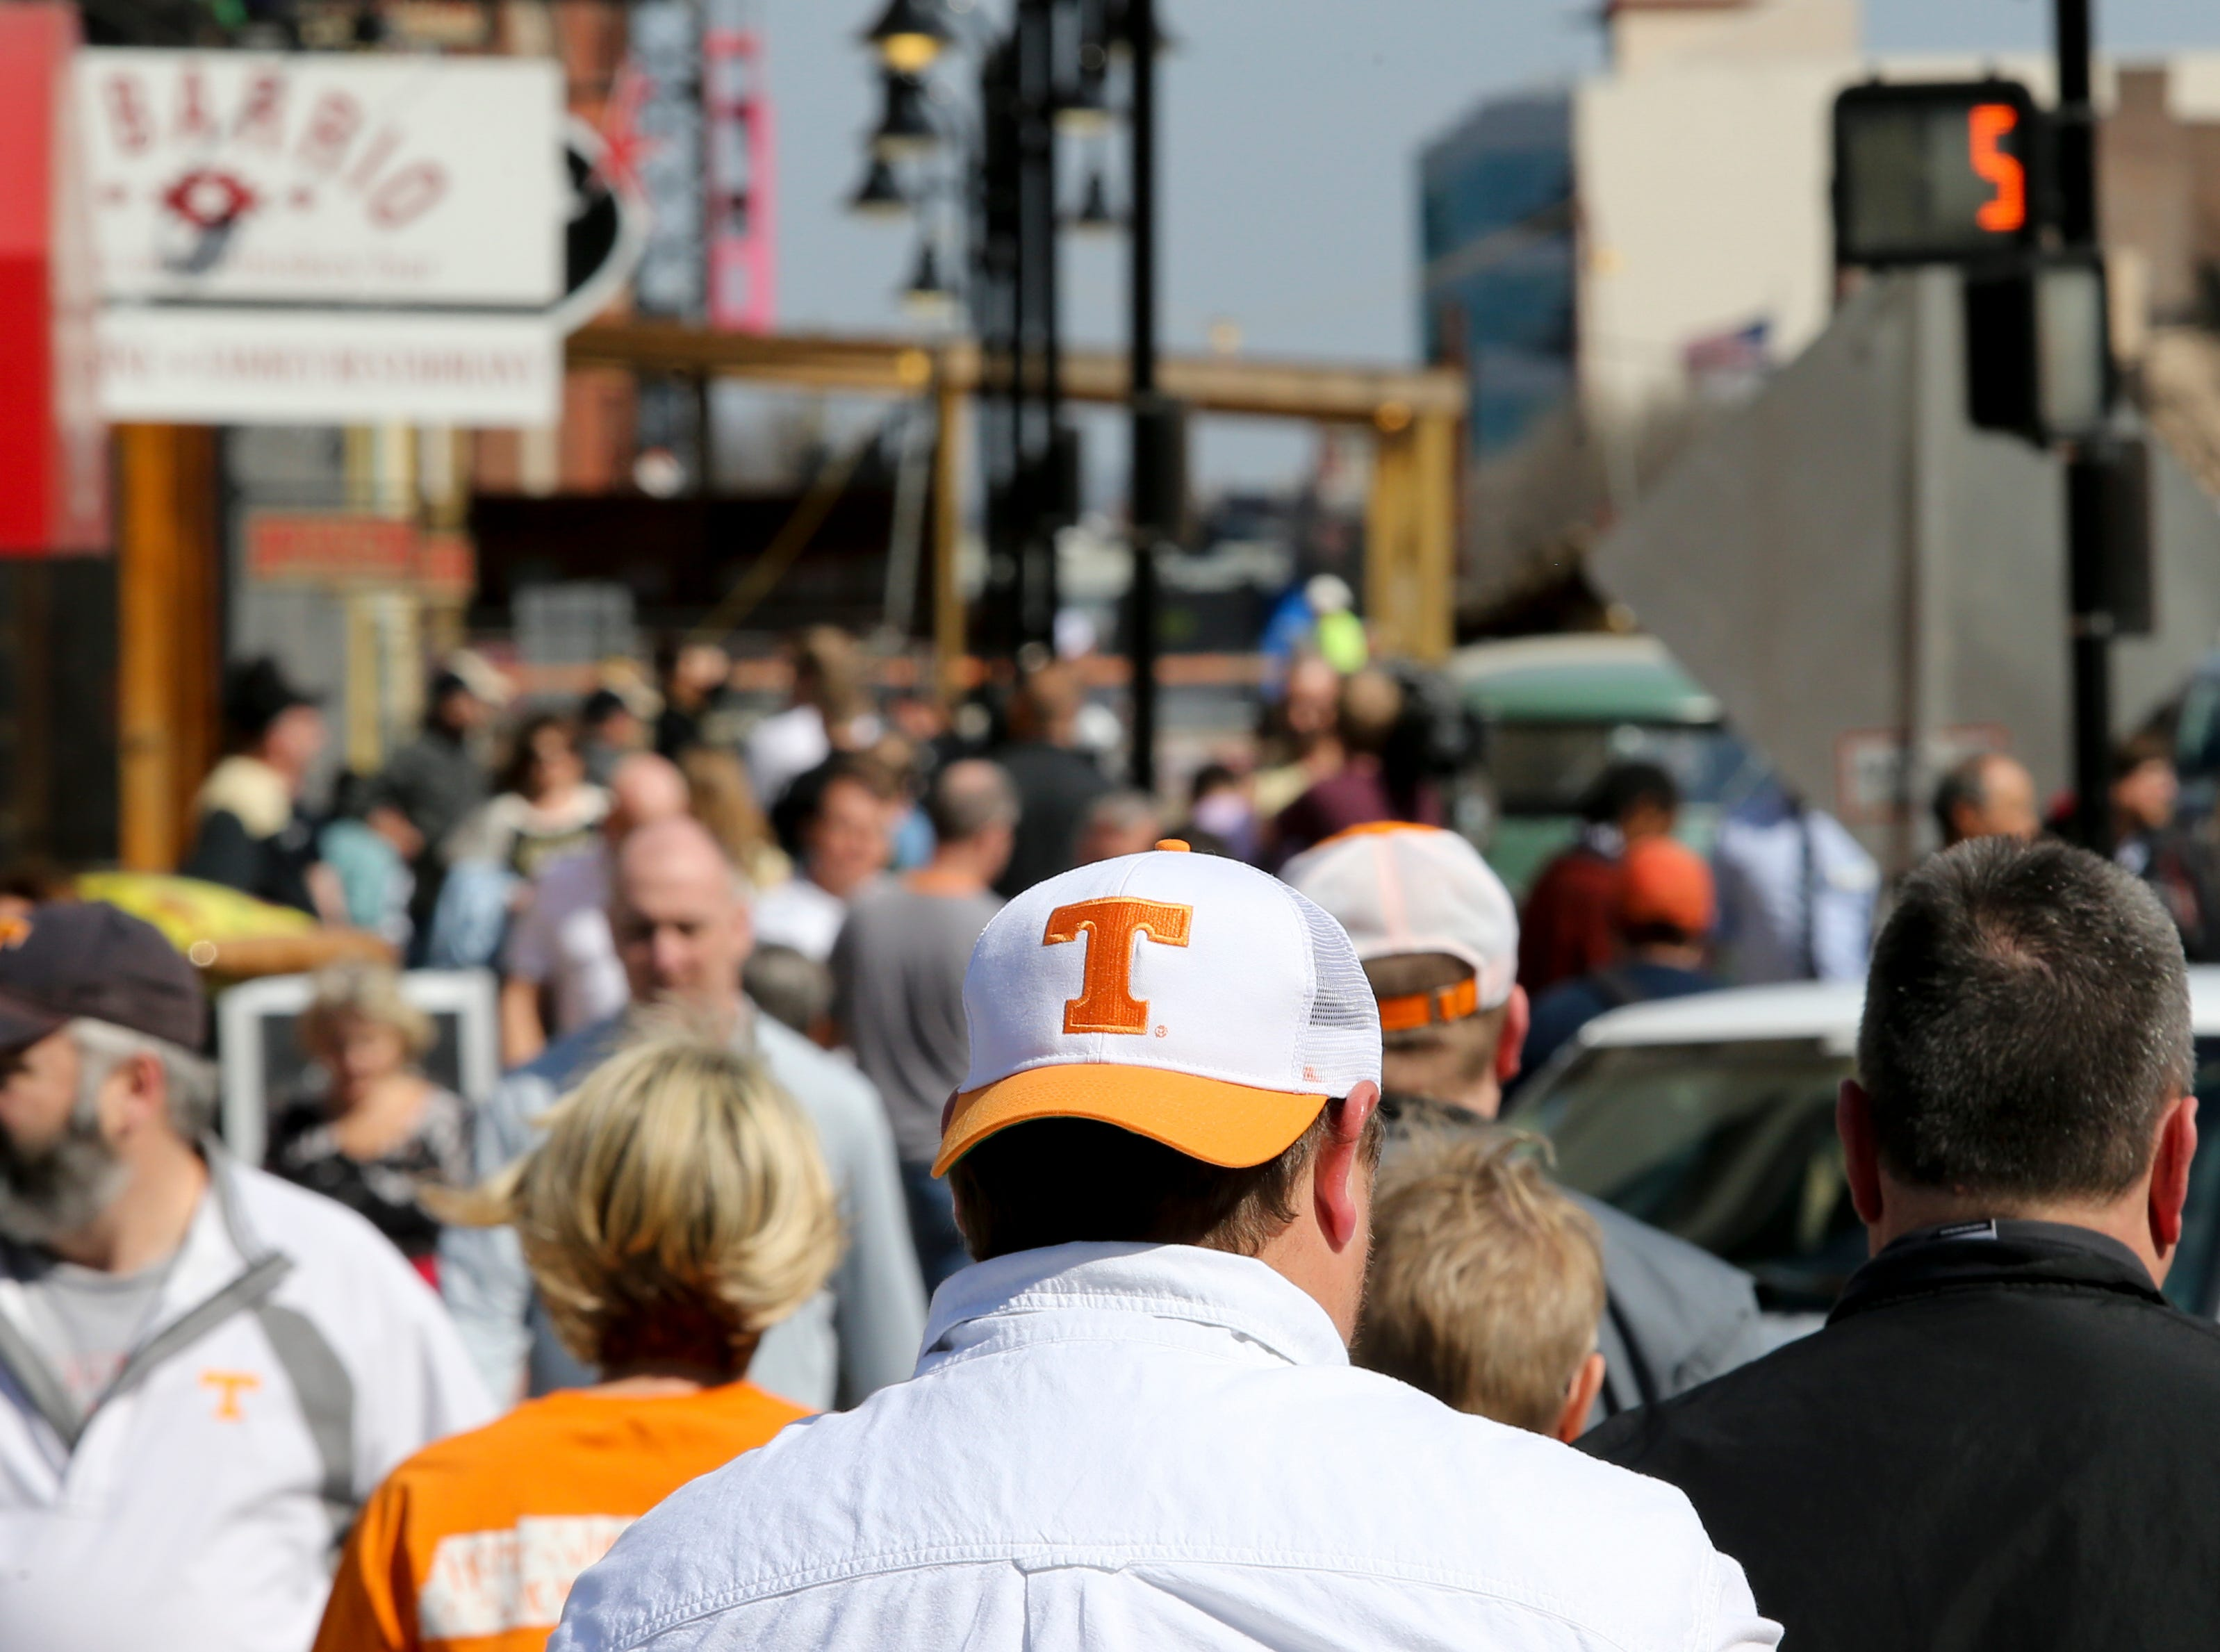 Tennessee, Purdue, Virginia and Oregon fans walk around downtown Louisville on March 28. They are in town to watch their teams play in the NCAA Sweet 16.